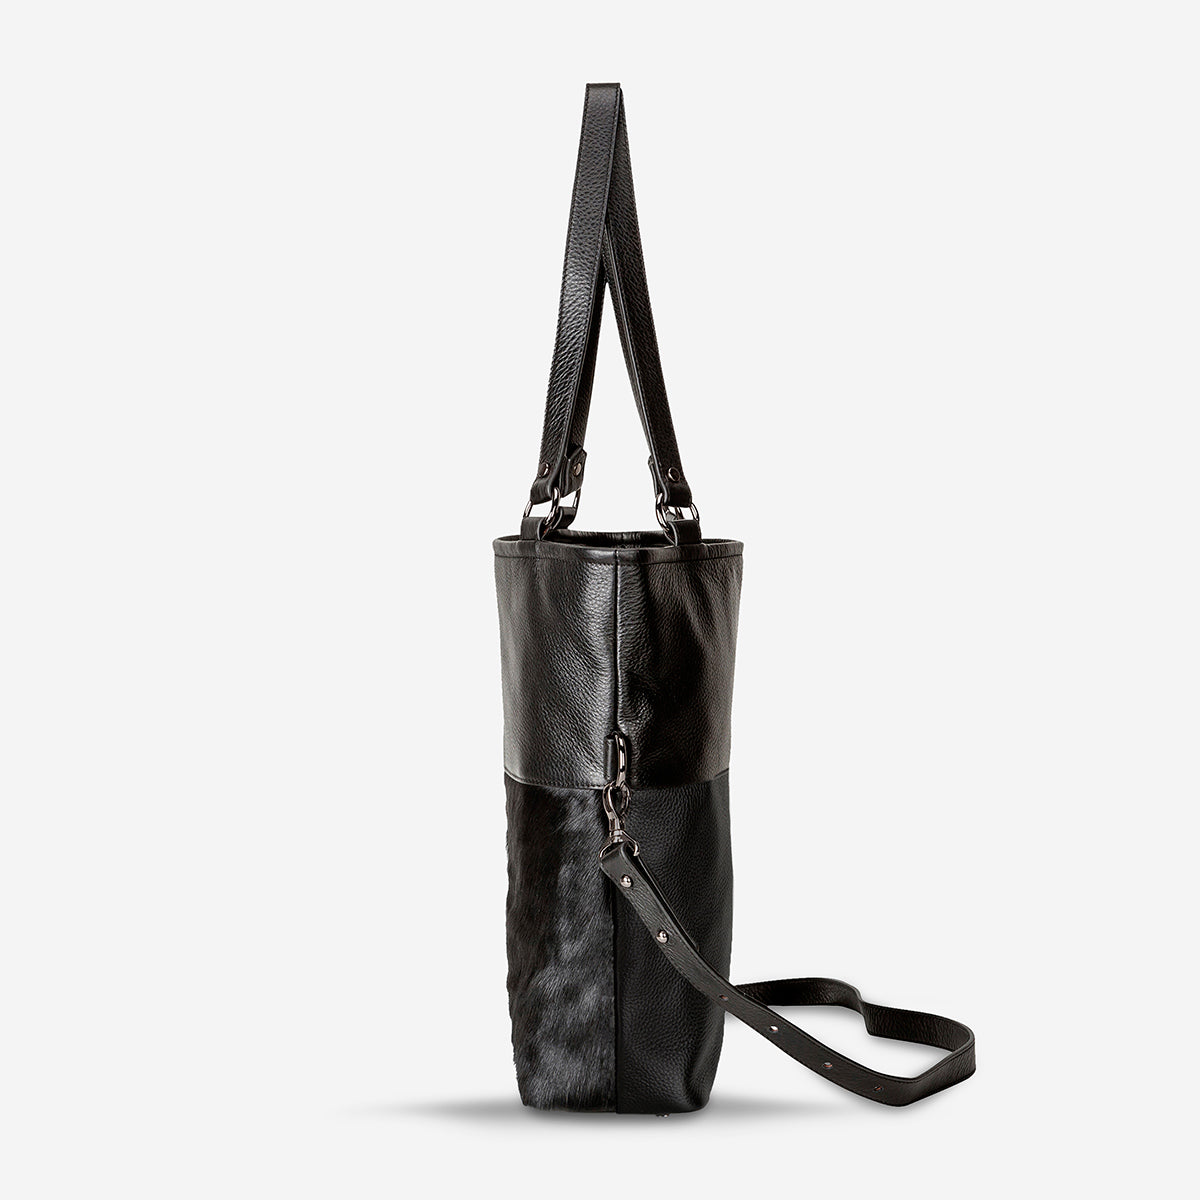 Status Anxiety Wasteland Handbag - Black Fur